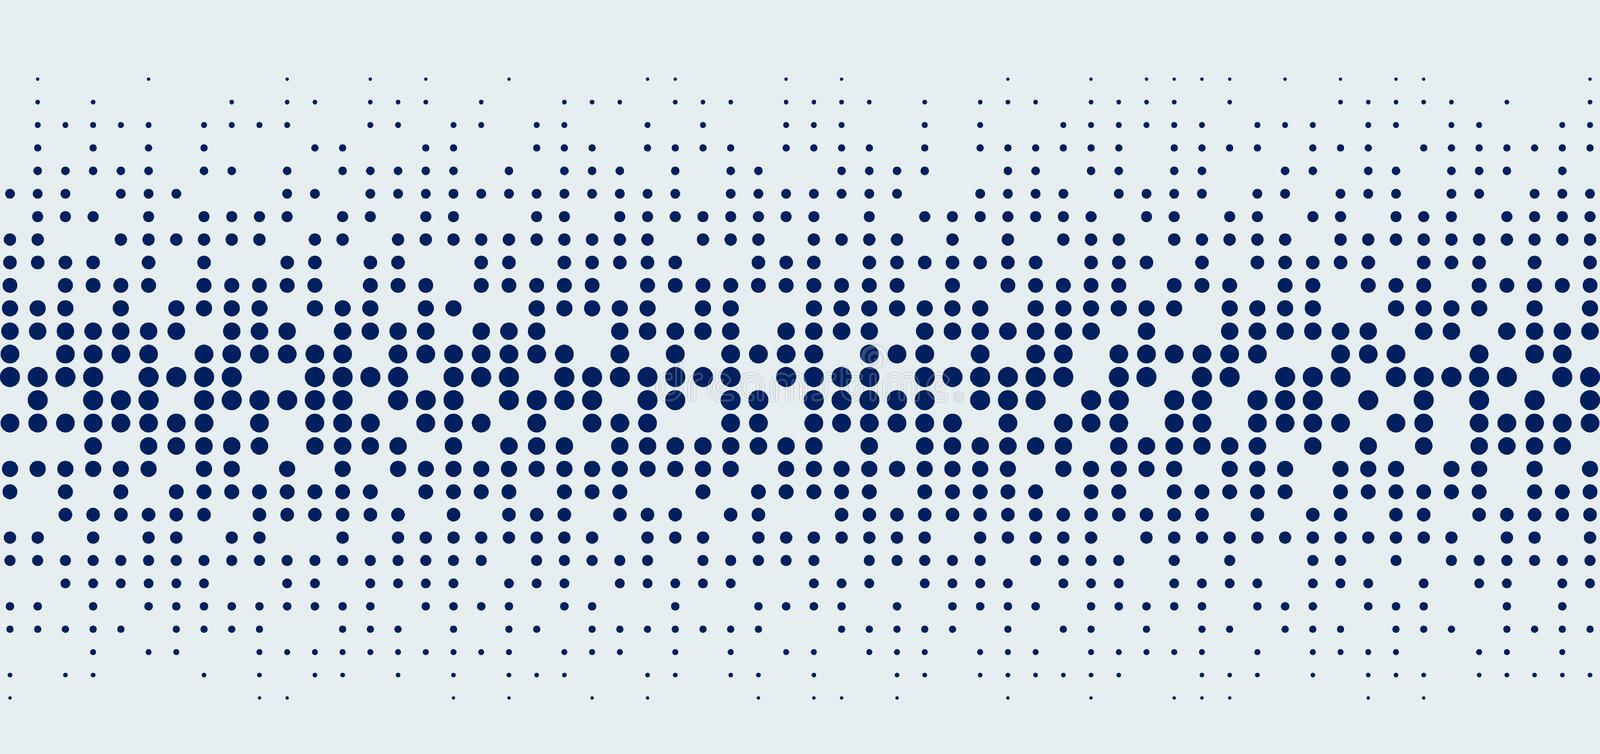 Abstract technology futuristic style big data blue geometric circle pattern on white background and texture vector illustration